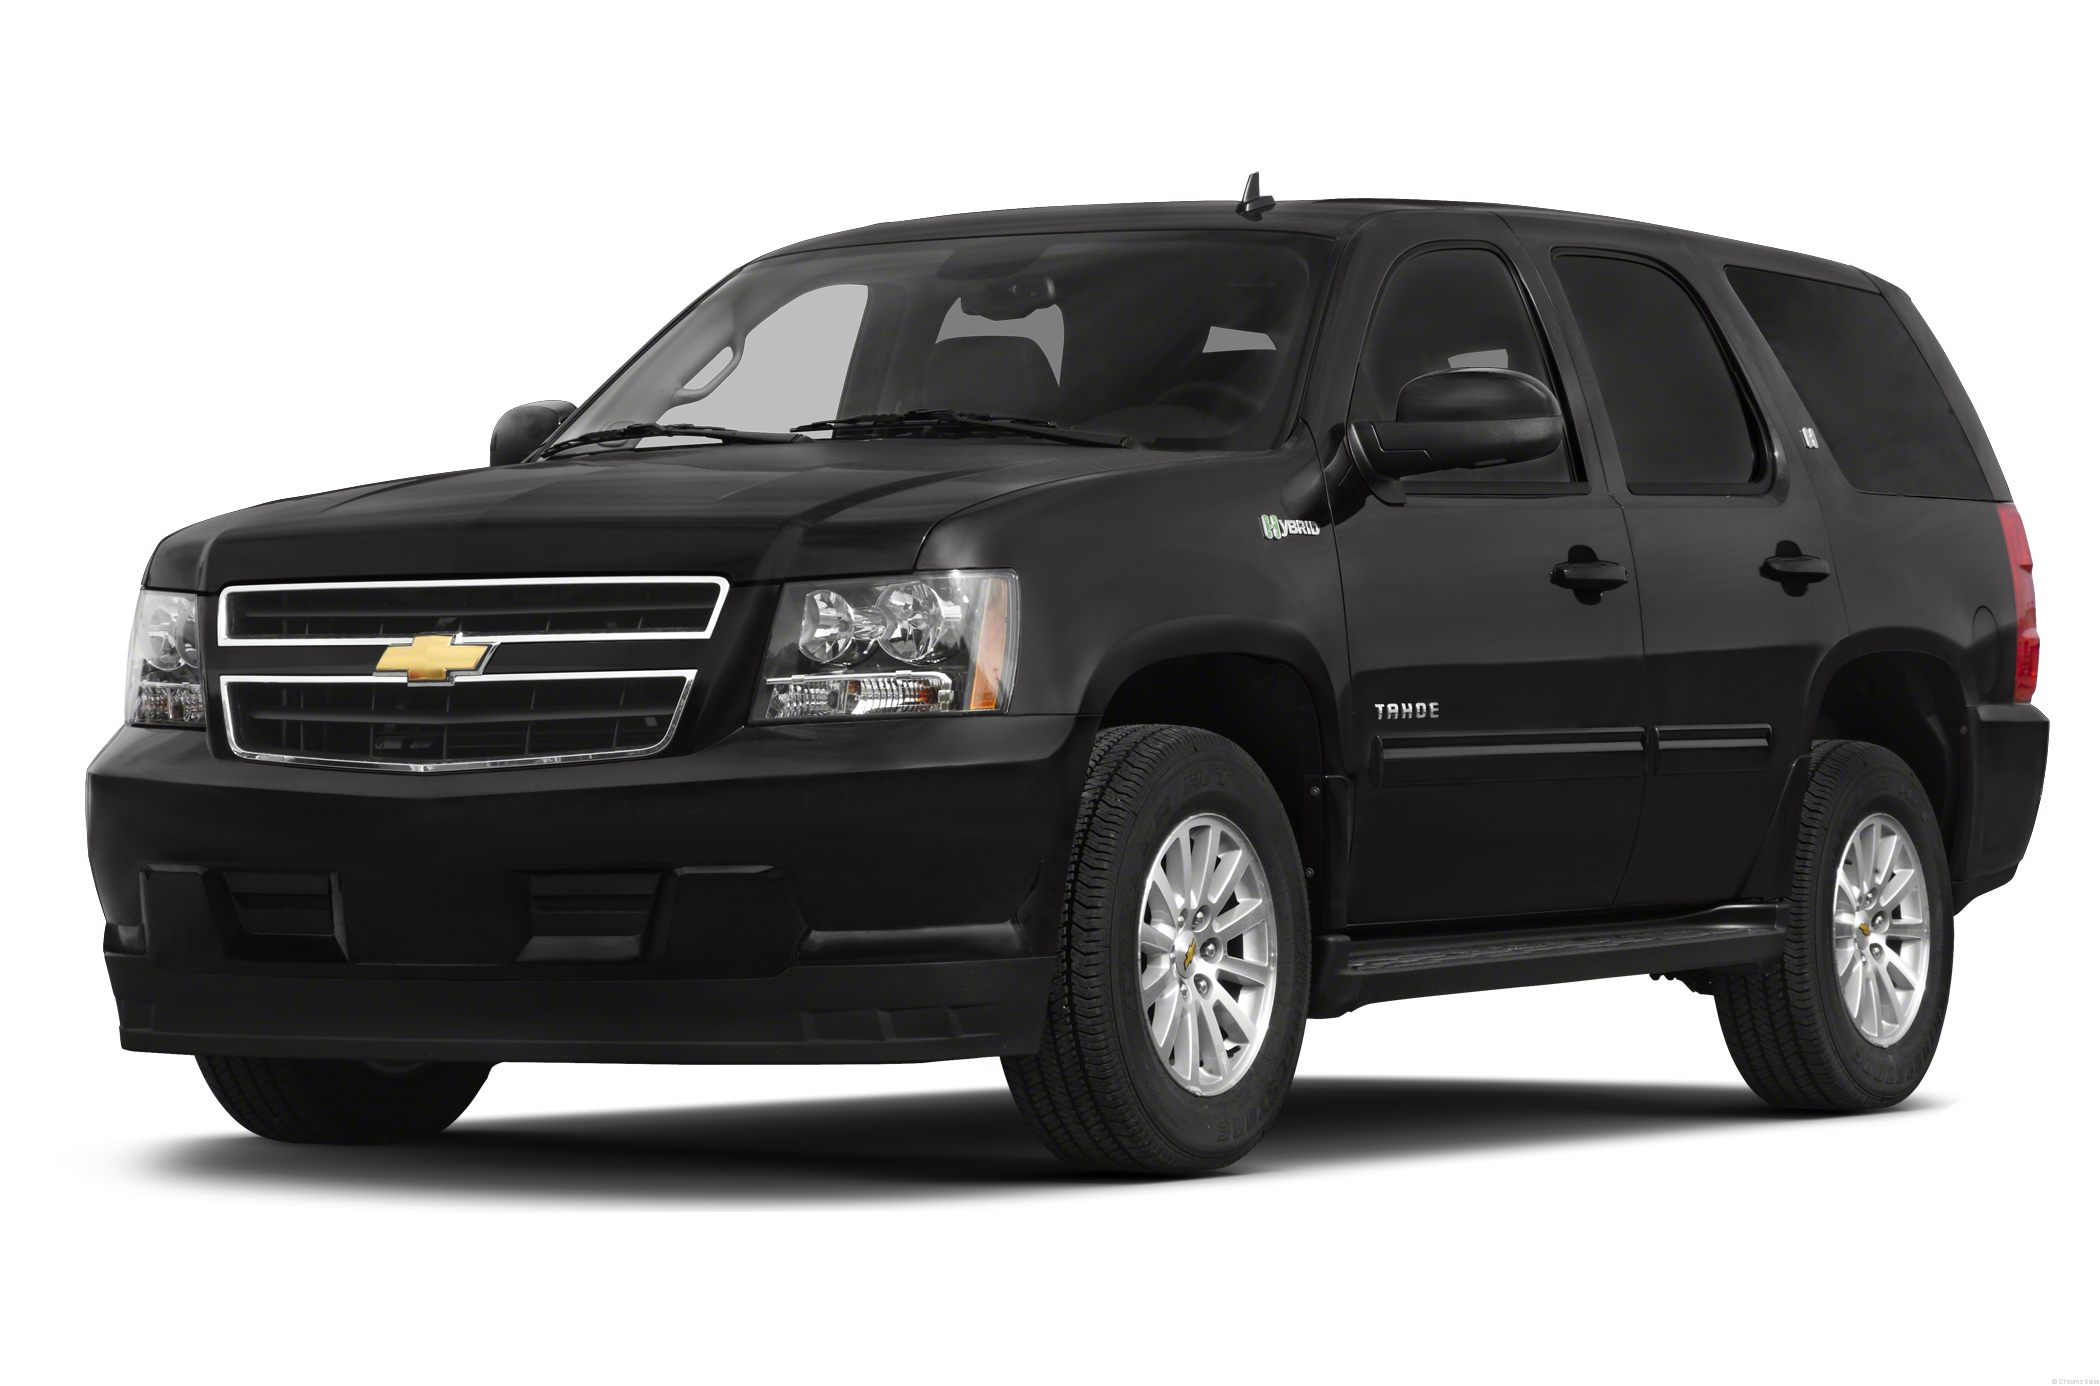 How Much Does A Yukon Car Cost